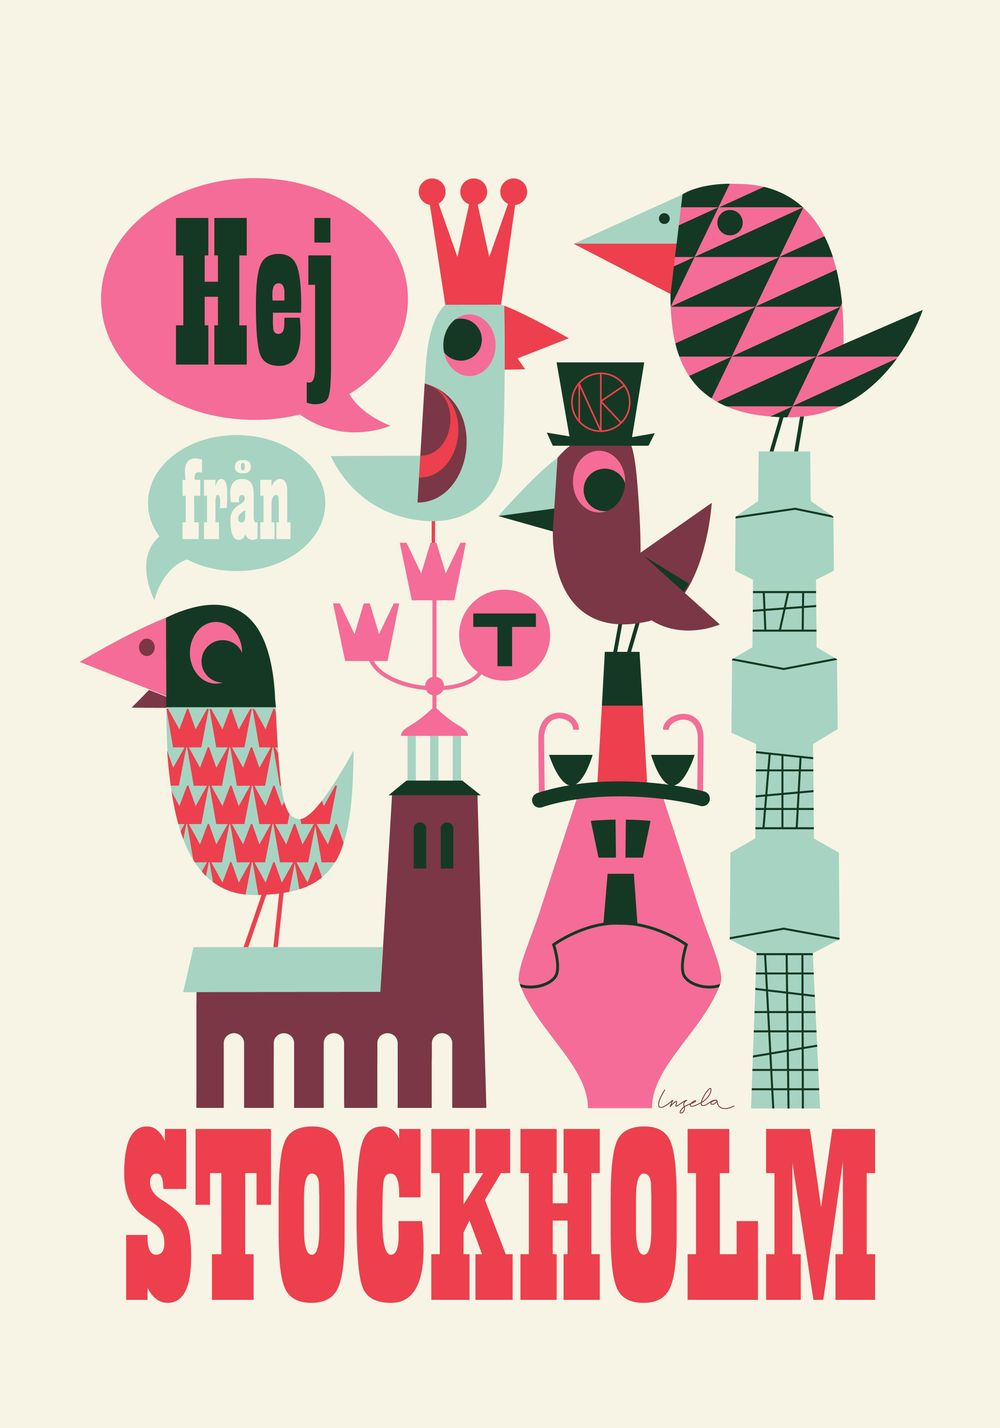 Stockholm poster - image 1 - student project